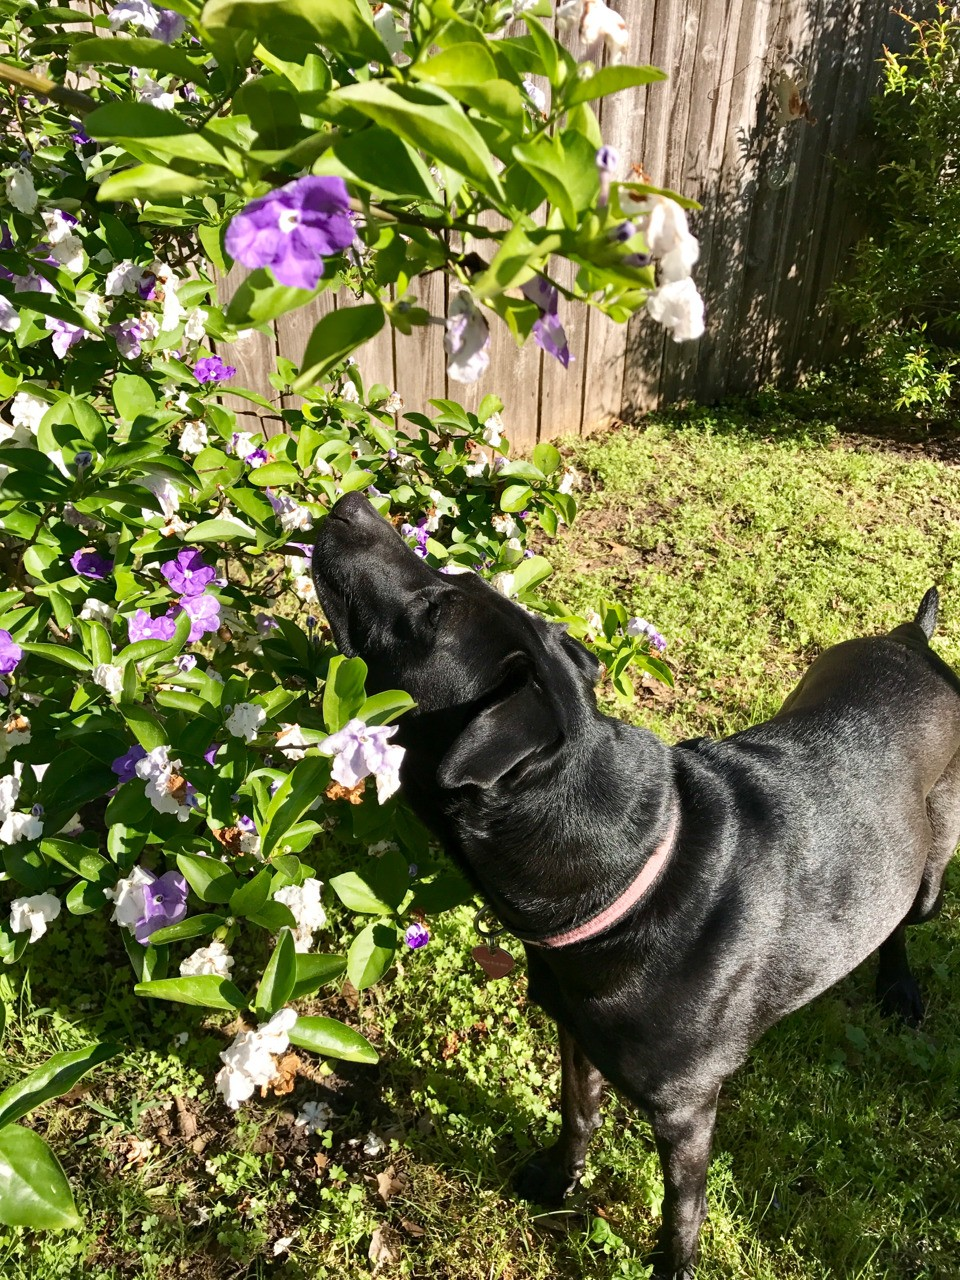 Stella smelling the flowers.